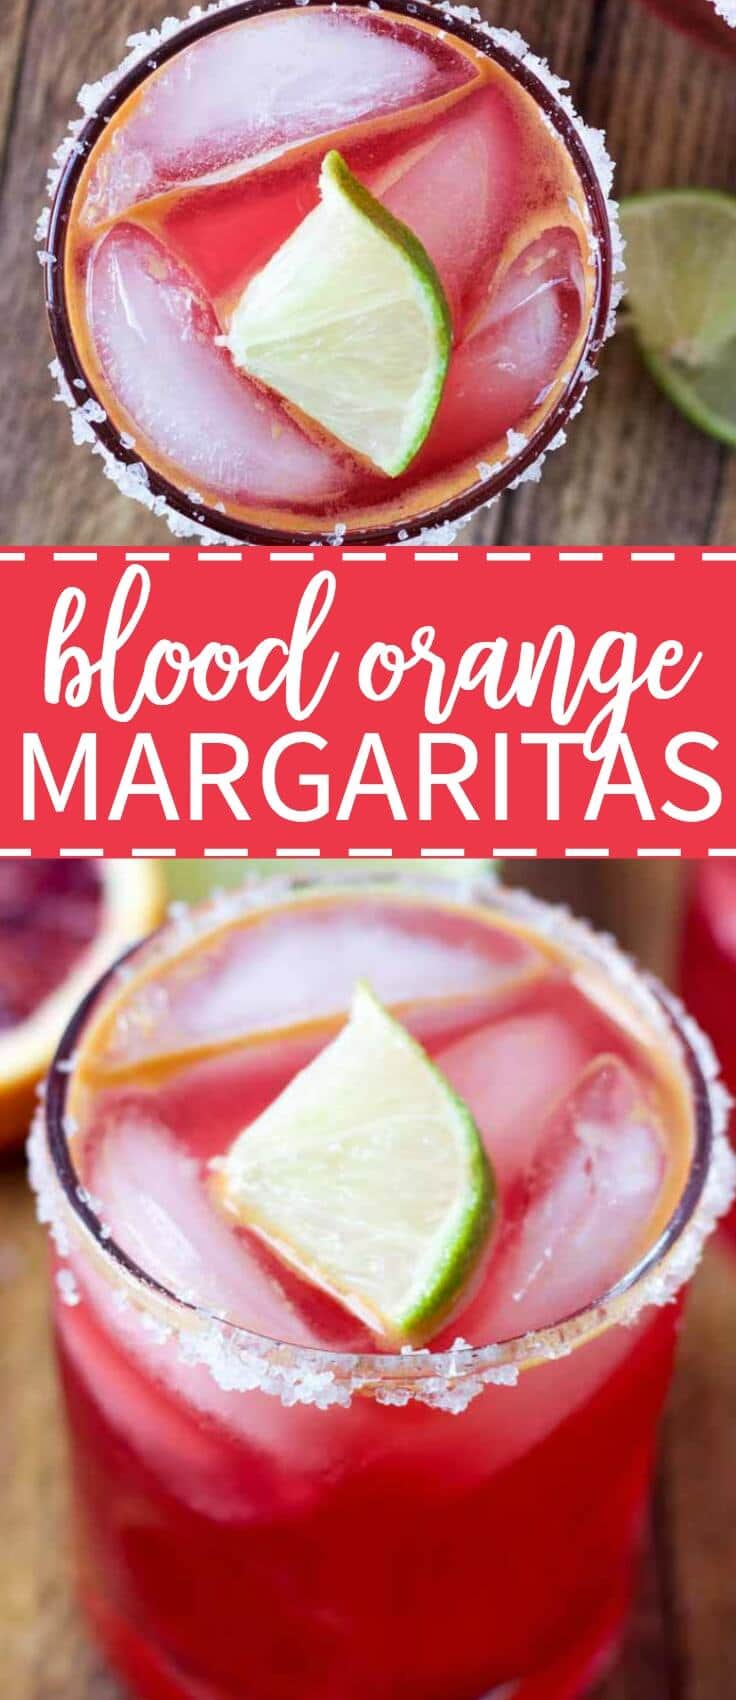 the best cindo de mayo drink recipe! These blood orange margaritas are and easy margarita recipe to make with so much flavor.